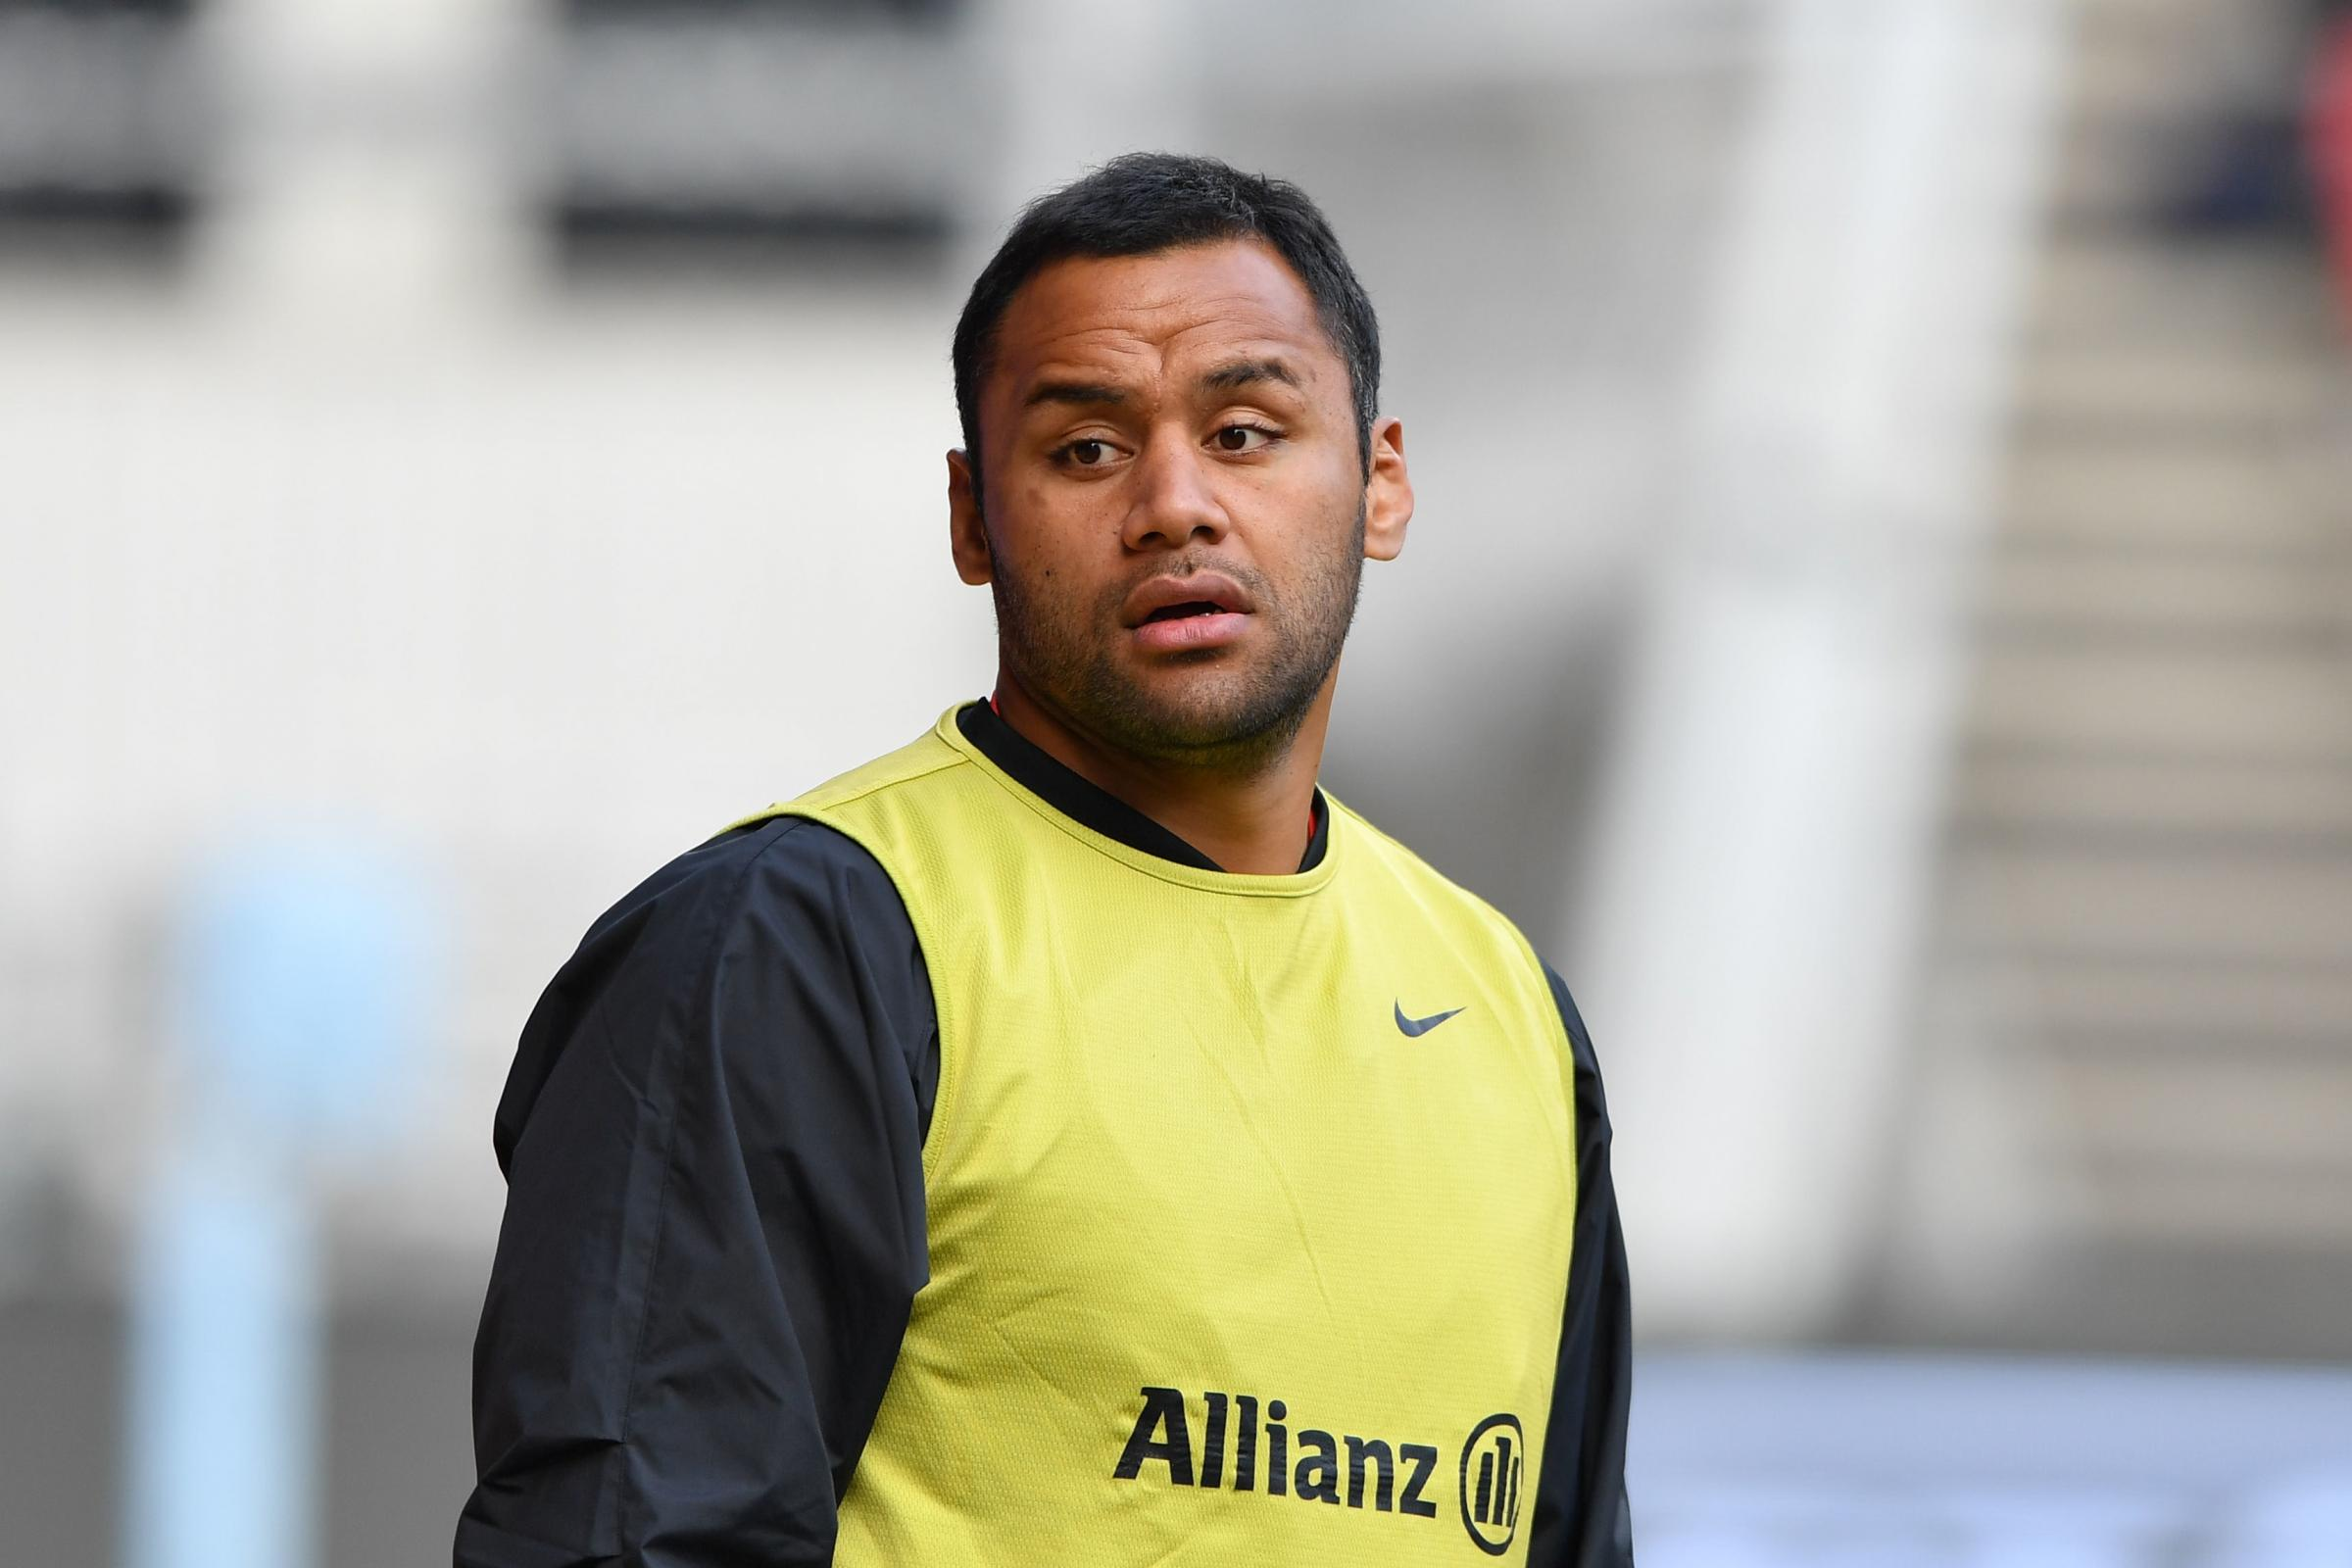 Billy Vunipola has been summoned by the RFU